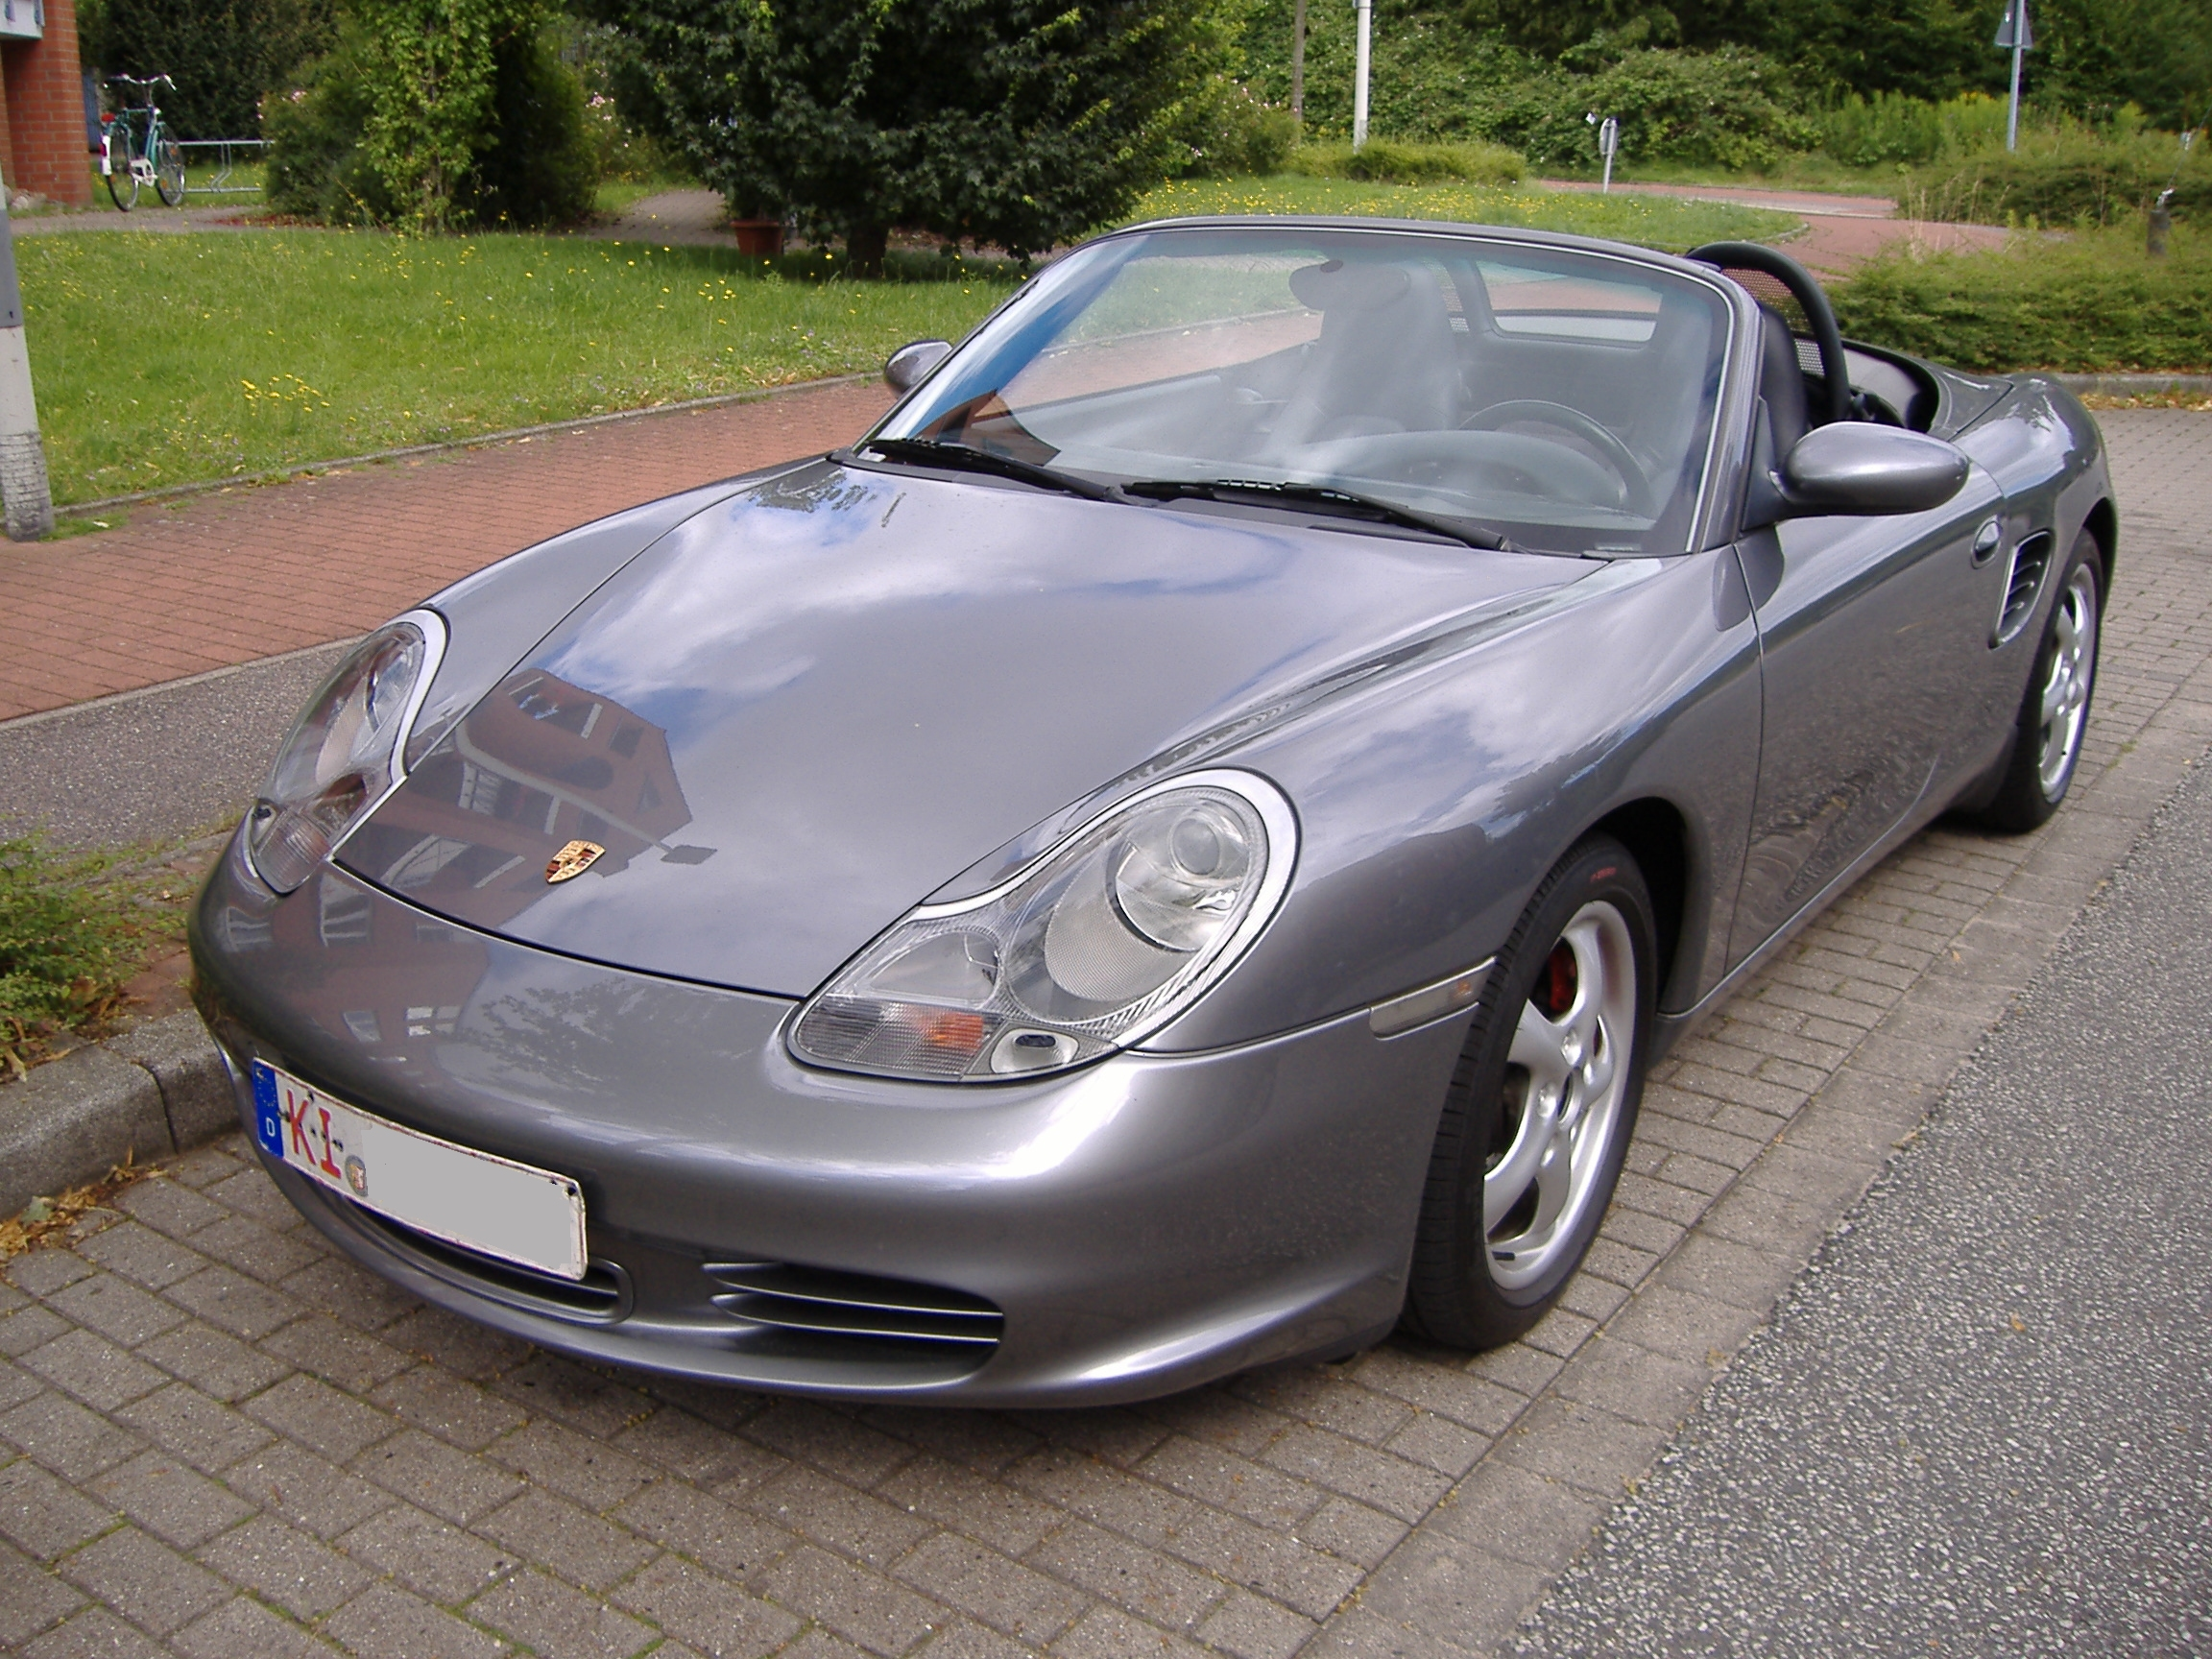 file porsche boxster986 jpg wikimedia commons. Black Bedroom Furniture Sets. Home Design Ideas